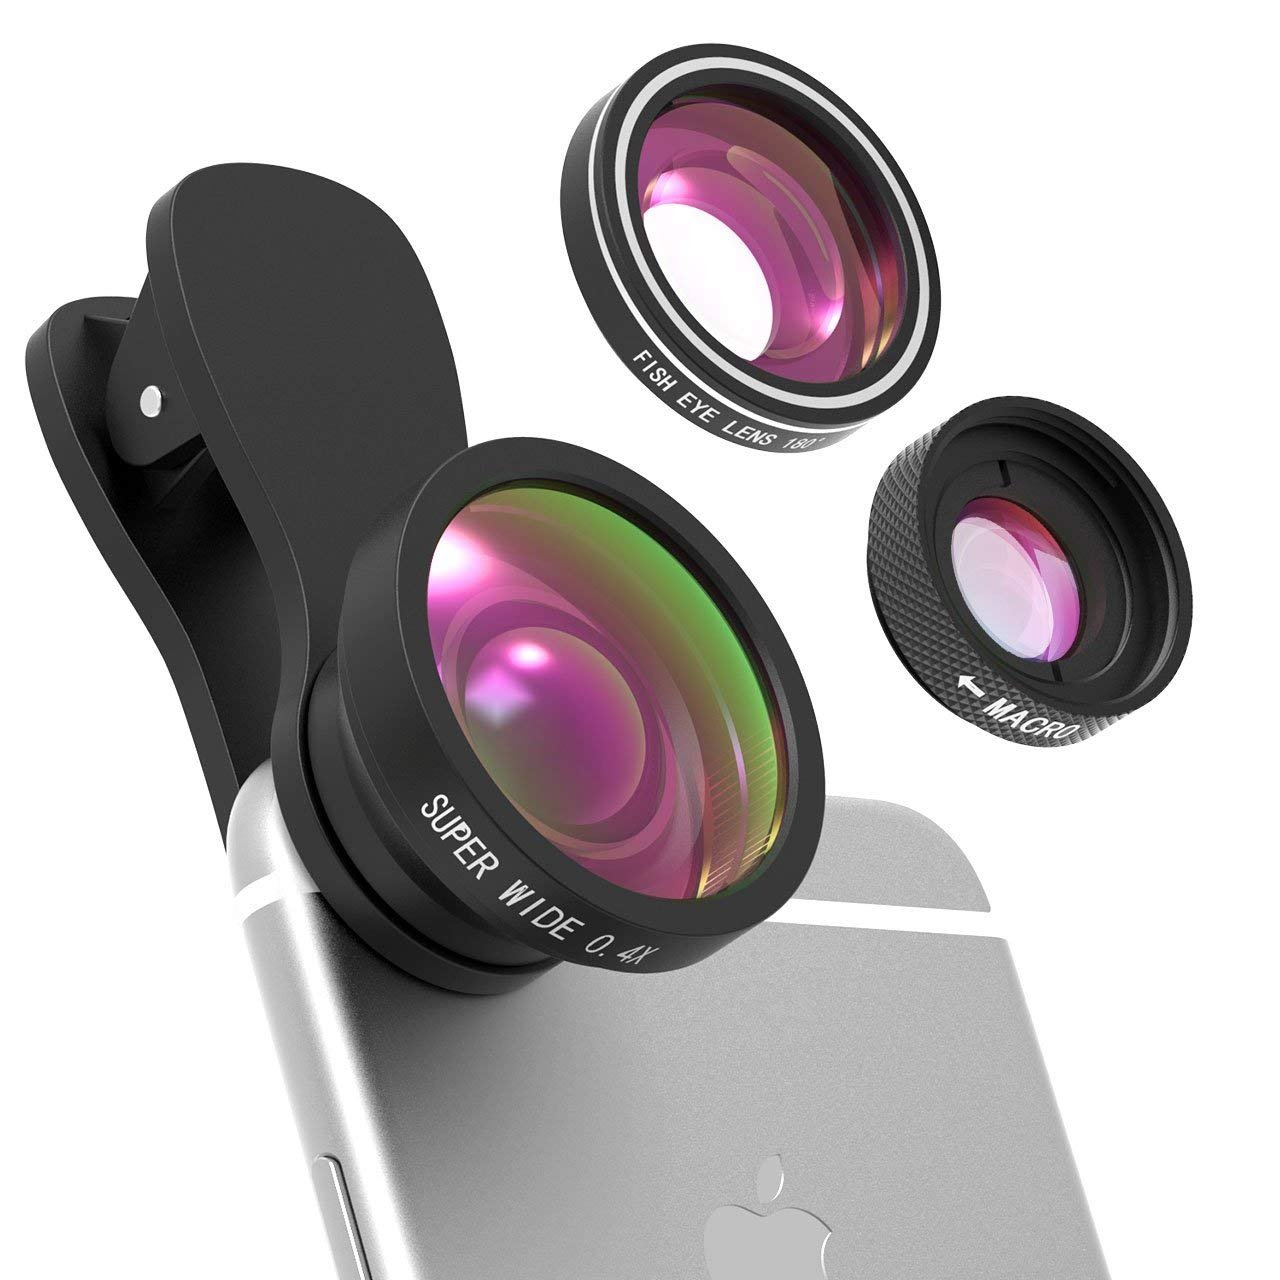 Yantop 3 in 1 Fisheye Lens for iPhone, Phone Lens, 10X Macro Lens, 0.4X Super Wide Angle Lens, 2 Detachable Clamps, 180 Degree Camera Lens Kit for iPhone 8, 7, 6 & Smartphones, Black by Yantop